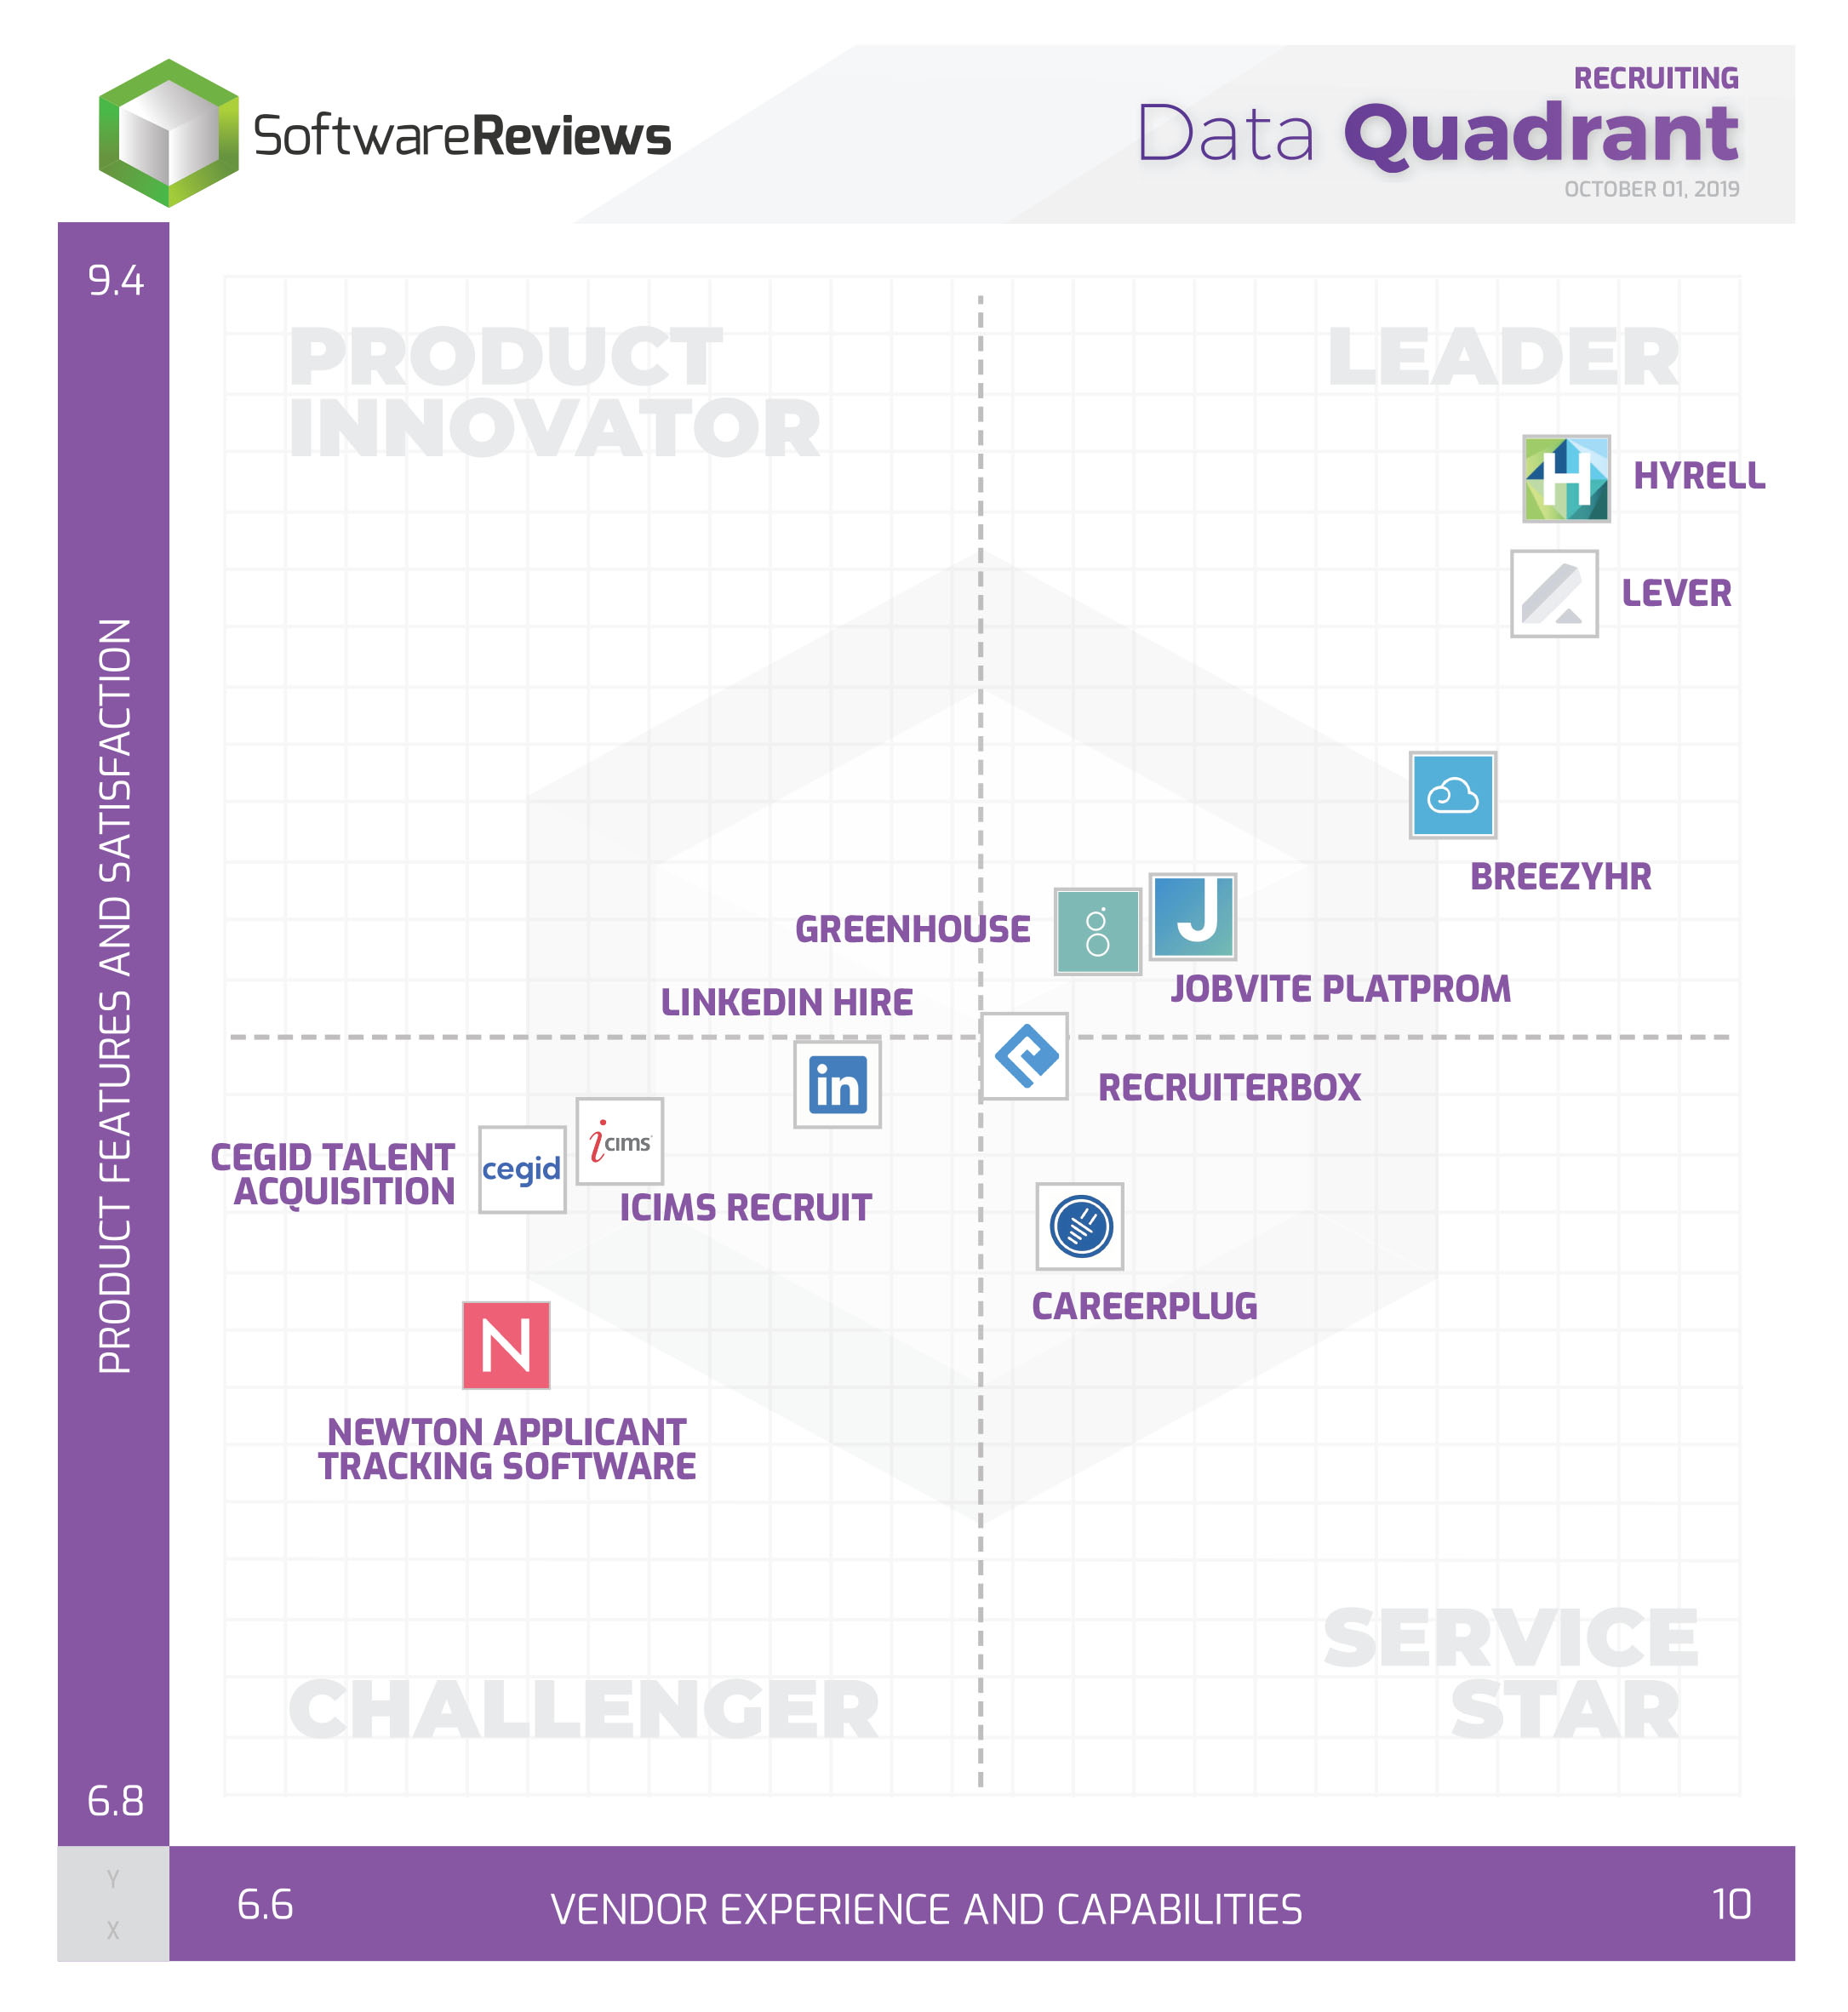 Recruiting Data Quadrant